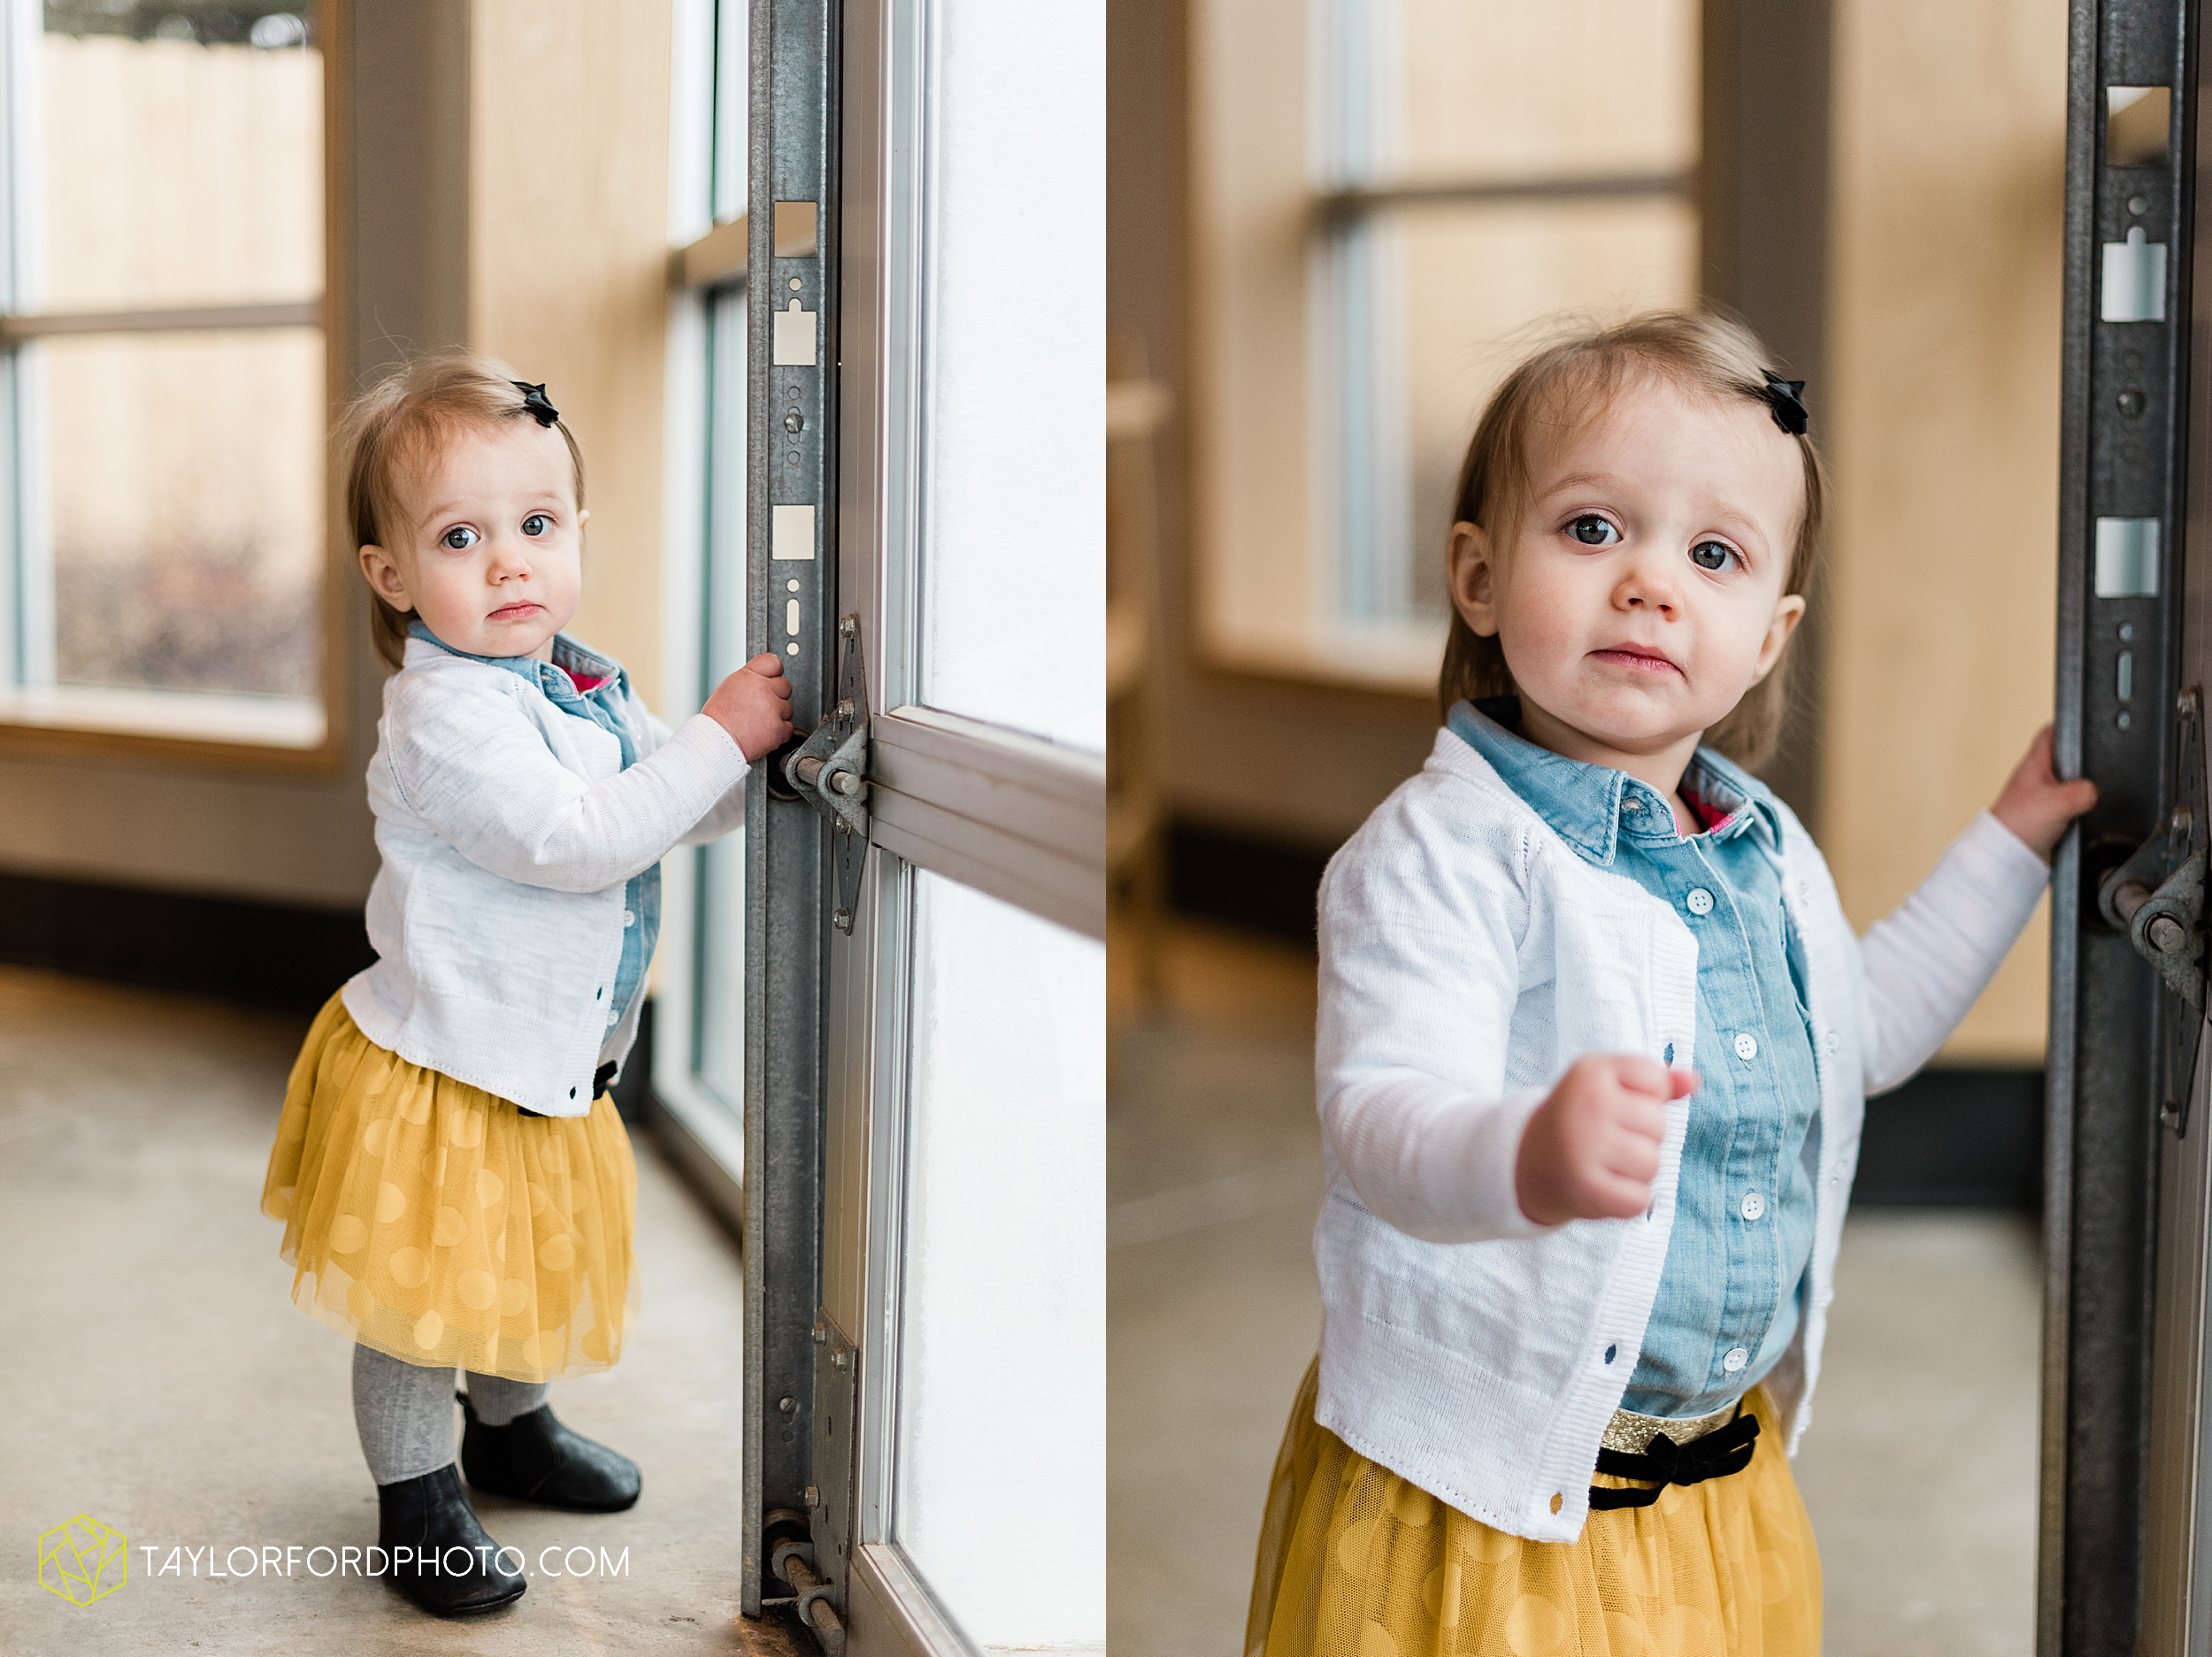 starbucks-one-1-year-old-brita-downtown-grand-wayne-at-home-family-fort-wayne-indiana-photography-taylor-ford-hirschy-photographer_2393.jpg